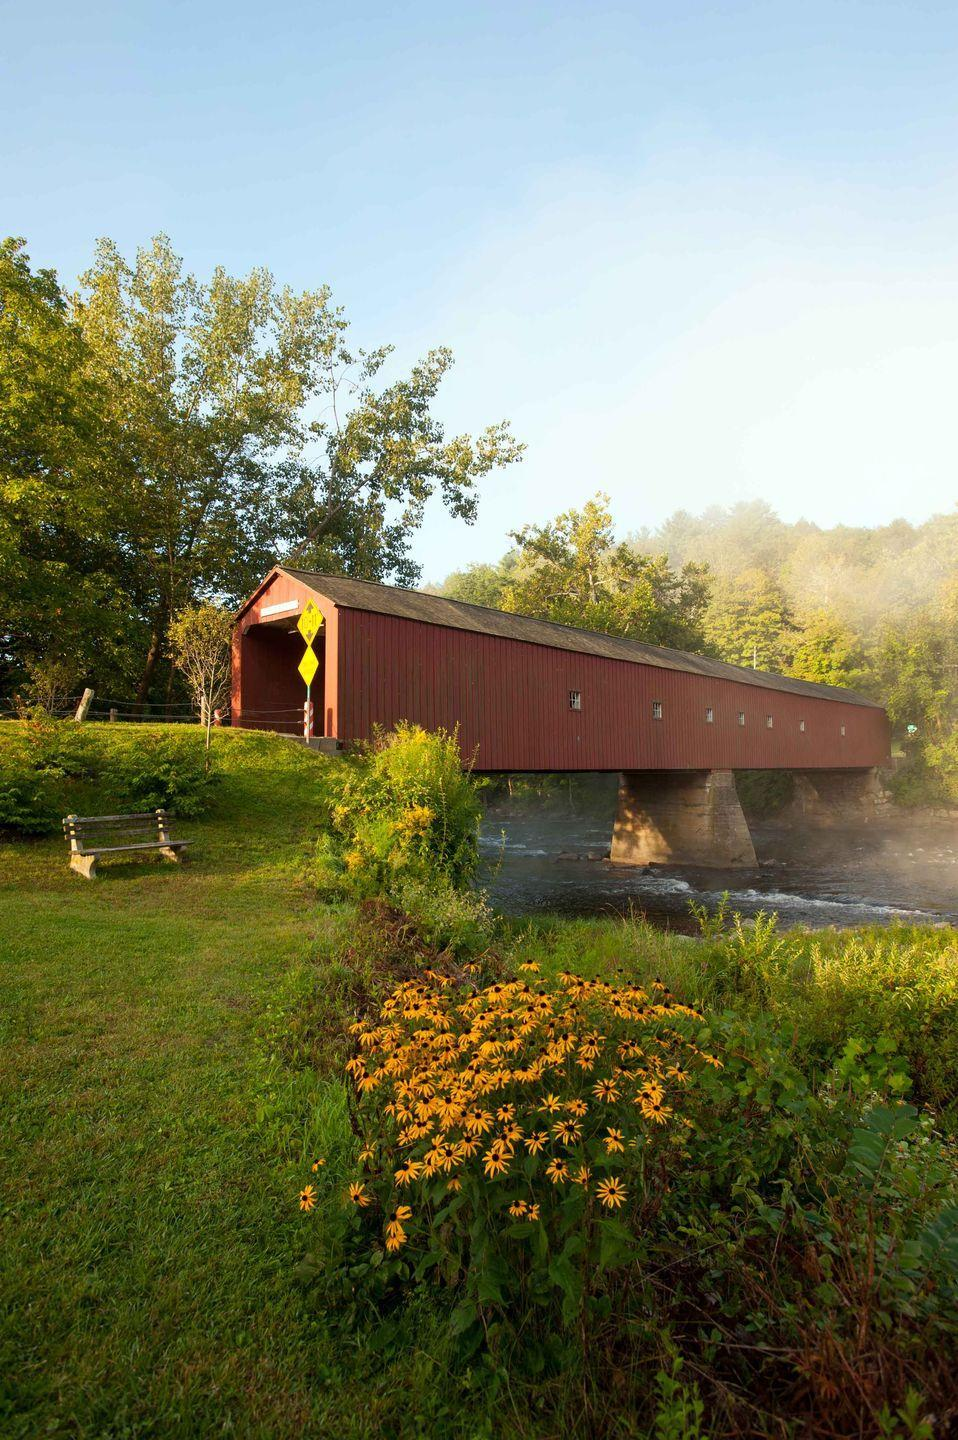 """<p><strong>The Drive: </strong><a href=""""https://www.tripadvisor.com/Tourism-g33820-Litchfield_Connecticut-Vacations.html"""" rel=""""nofollow noopener"""" target=""""_blank"""" data-ylk=""""slk:Litchfield Hills Loop"""" class=""""link rapid-noclick-resp"""">Litchfield Hills Loop</a></p><p><strong>The Scene: </strong>Jump on Route 7 to take in this stunning 100-mile loop that's best experienced in the fall. (Hint: Peak foliage usually occurs between September 26 and October 15!)</p><p><strong>The Pit-Stop: </strong>Step back into the 19th century by visiting <a href=""""https://www.tripadvisor.com/Tourism-g33781-Falls_Village_Connecticut-Vacations.html"""" rel=""""nofollow noopener"""" target=""""_blank"""" data-ylk=""""slk:Falls Village"""" class=""""link rapid-noclick-resp"""">Falls Village</a>. Your family can spend the entire day exploring this charming town, which includes gorgeous churches, railroad depots, streets, and historic houses.</p>"""